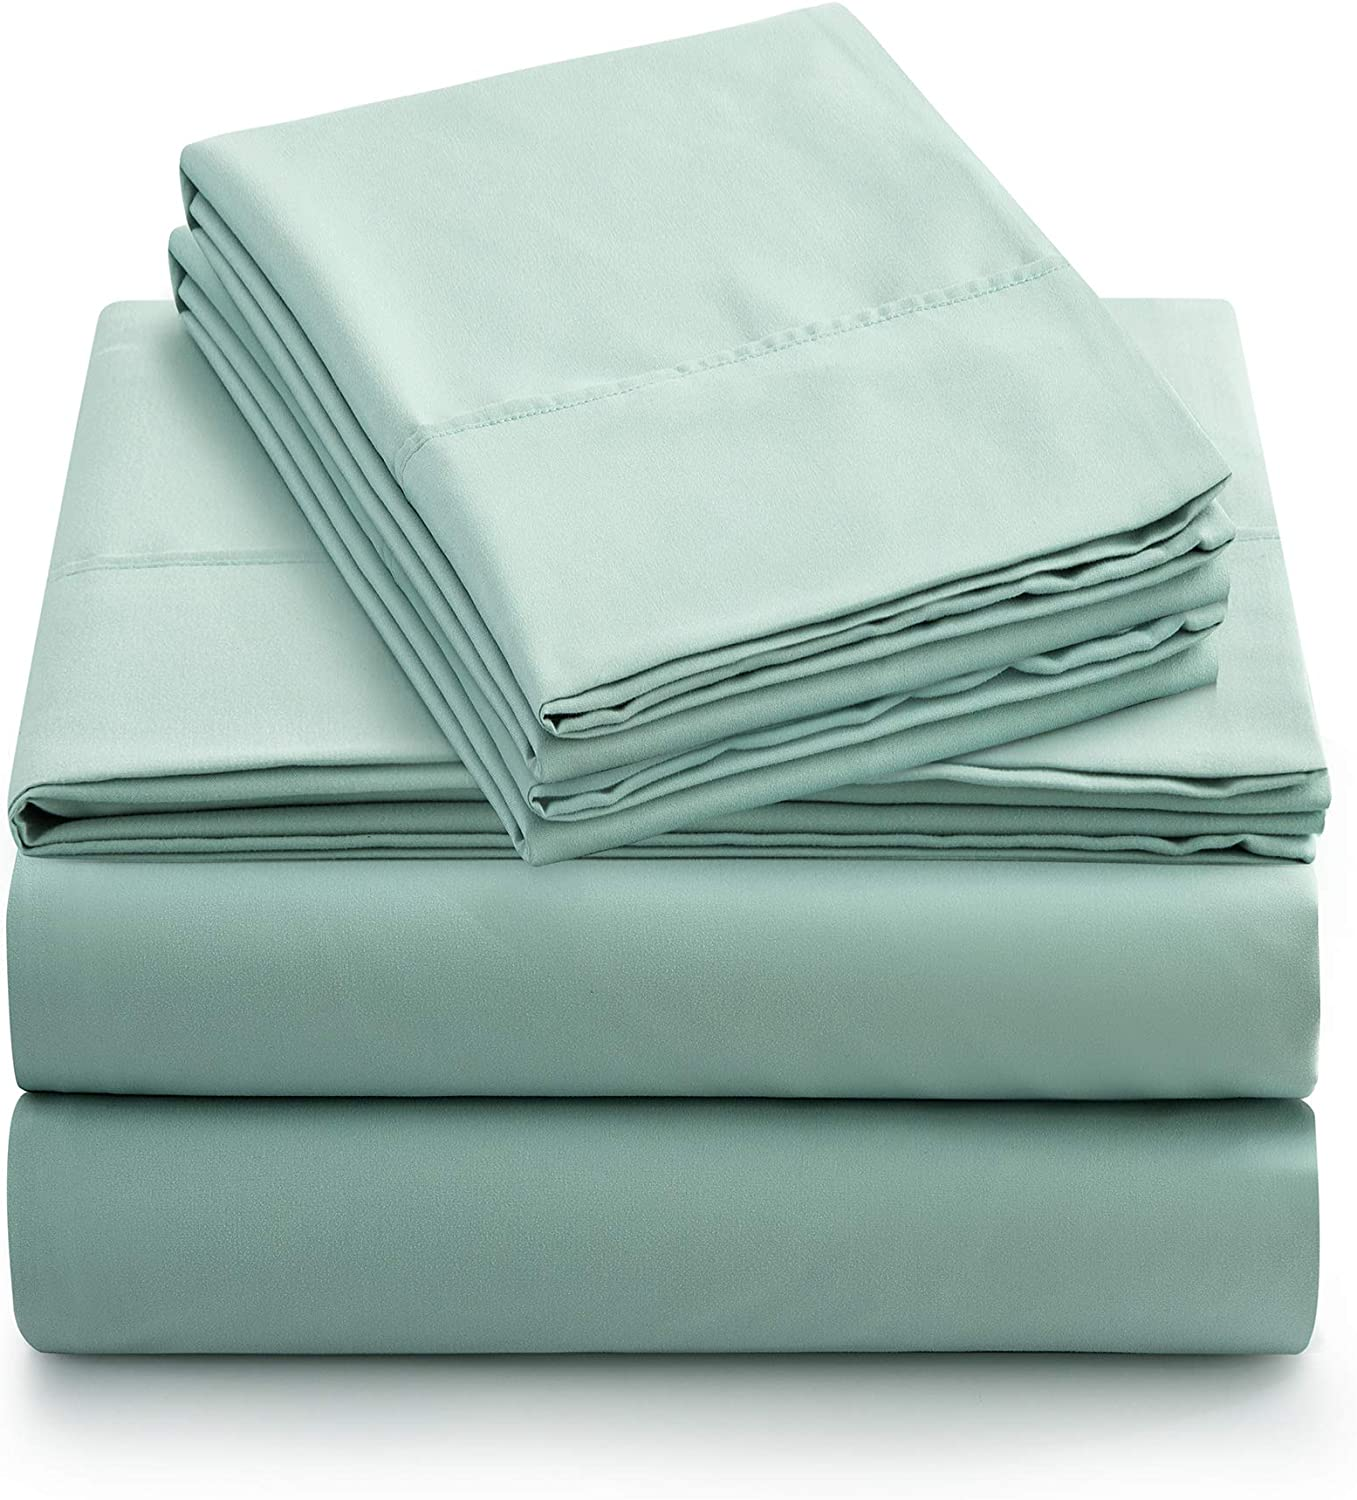 Newspin Bed Sheets Set, 1800 Series Soft Sheets Thicken Durable Double Brushed Microfiber Wrinkle Resistant Bedding Sheet fit 16 inch Deep Pockets Mattress(4 Piece Queen Sheet Set,Mint Green)